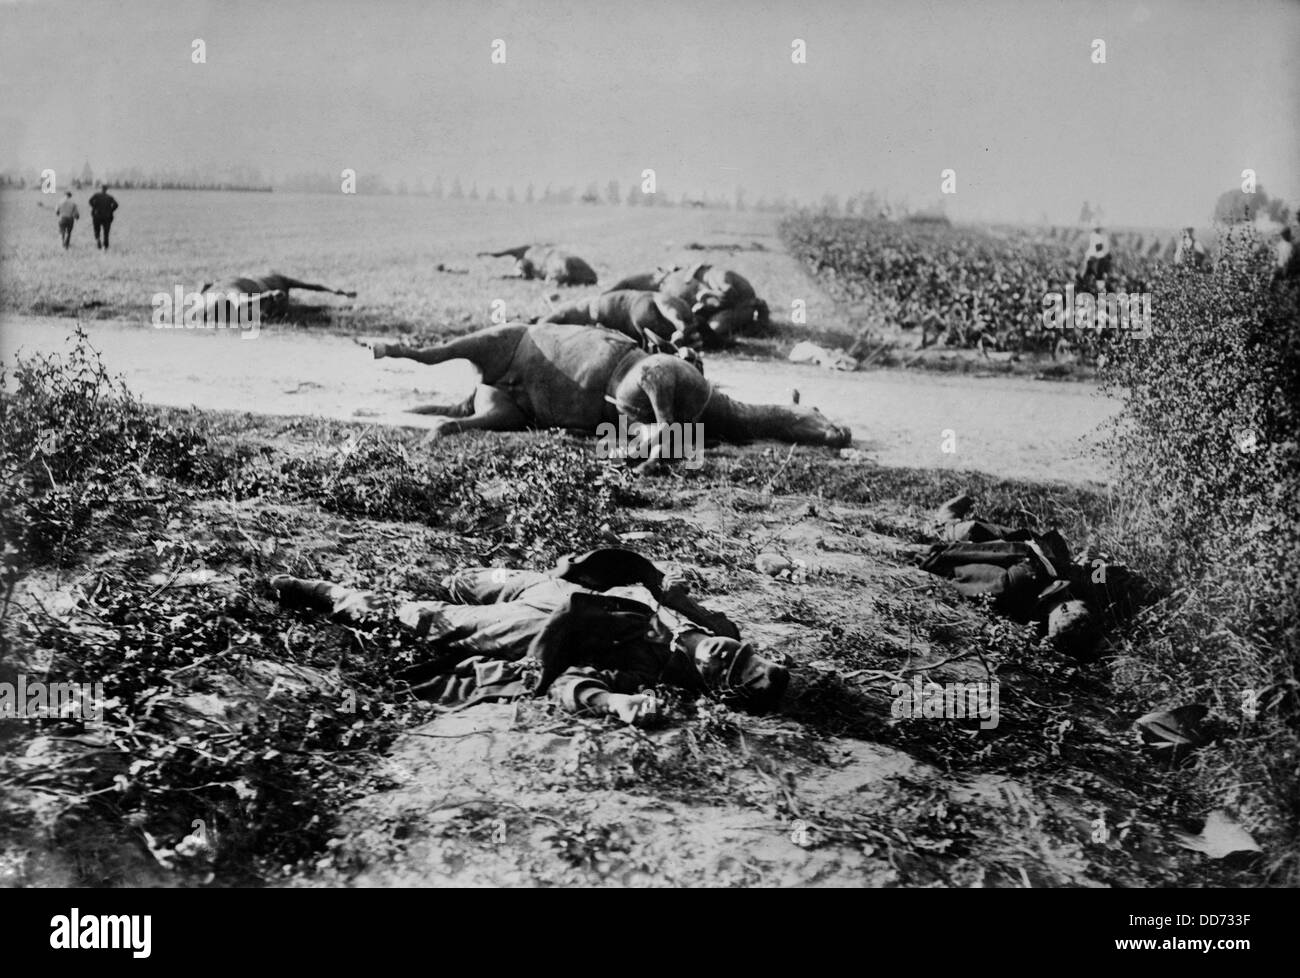 World War 1. Dead soldiers and horses in a field after the Battle of Haelen which was fought by the German and Belgian - Stock Image